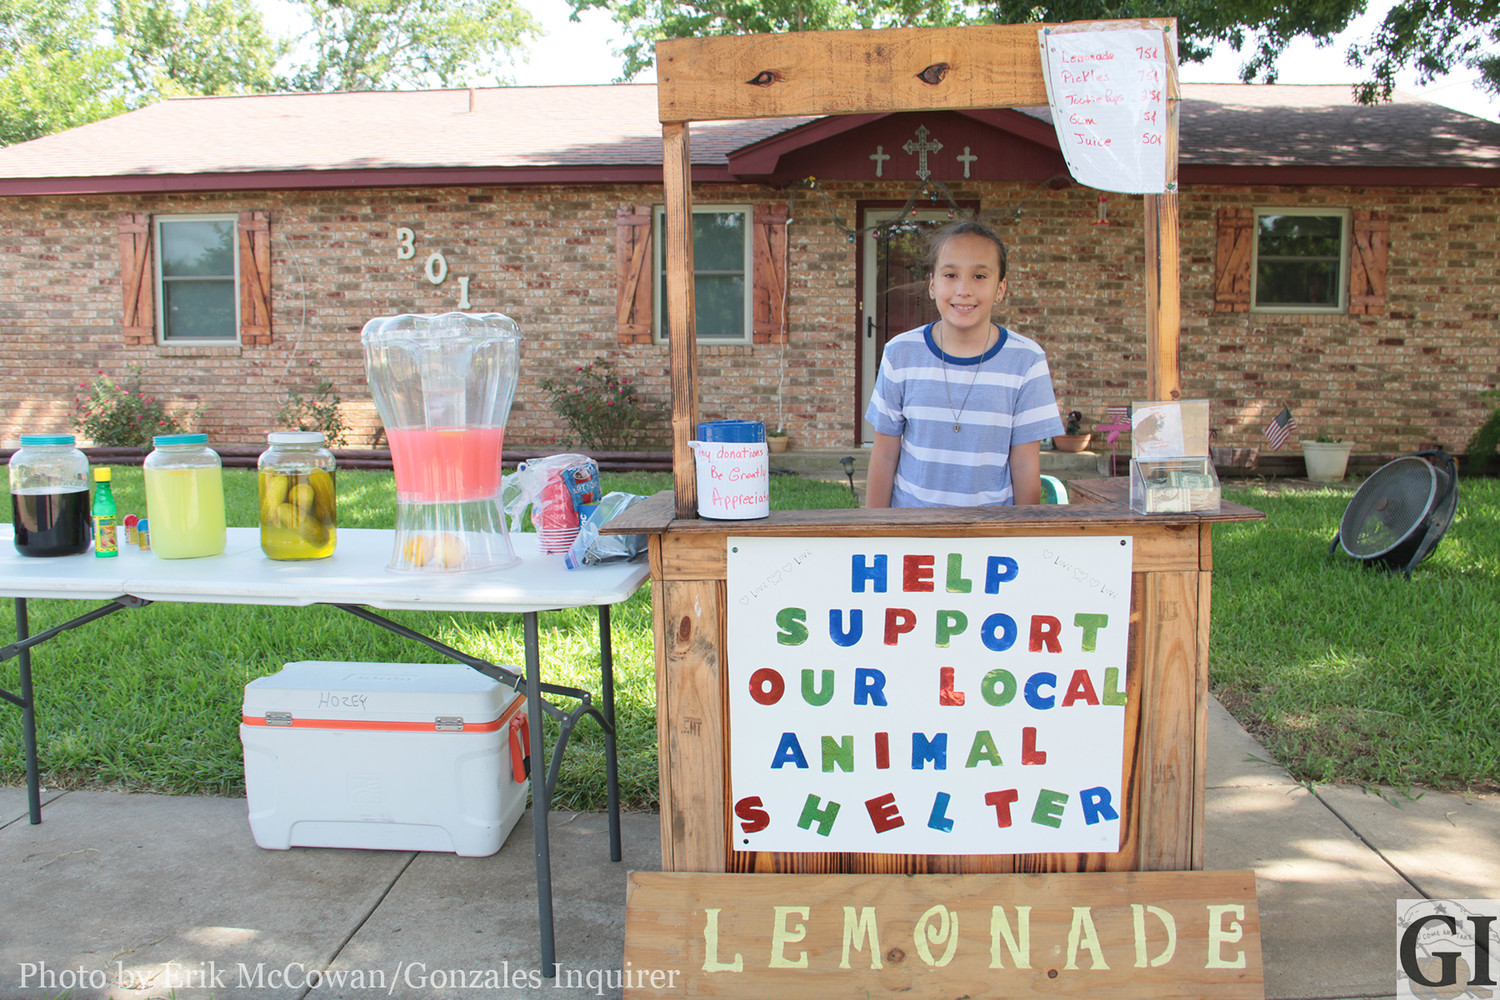 Rylee Alvarez has decided to spend the dog days of summer by helping the Passion for Paws Animal Shelter in Nixon. Her lemonade stand is a personal project to raise money for the shelter and can be found at 301 E. 6th St. in Nixon. She is usually at the stand on Friday and Saturday afternoons.